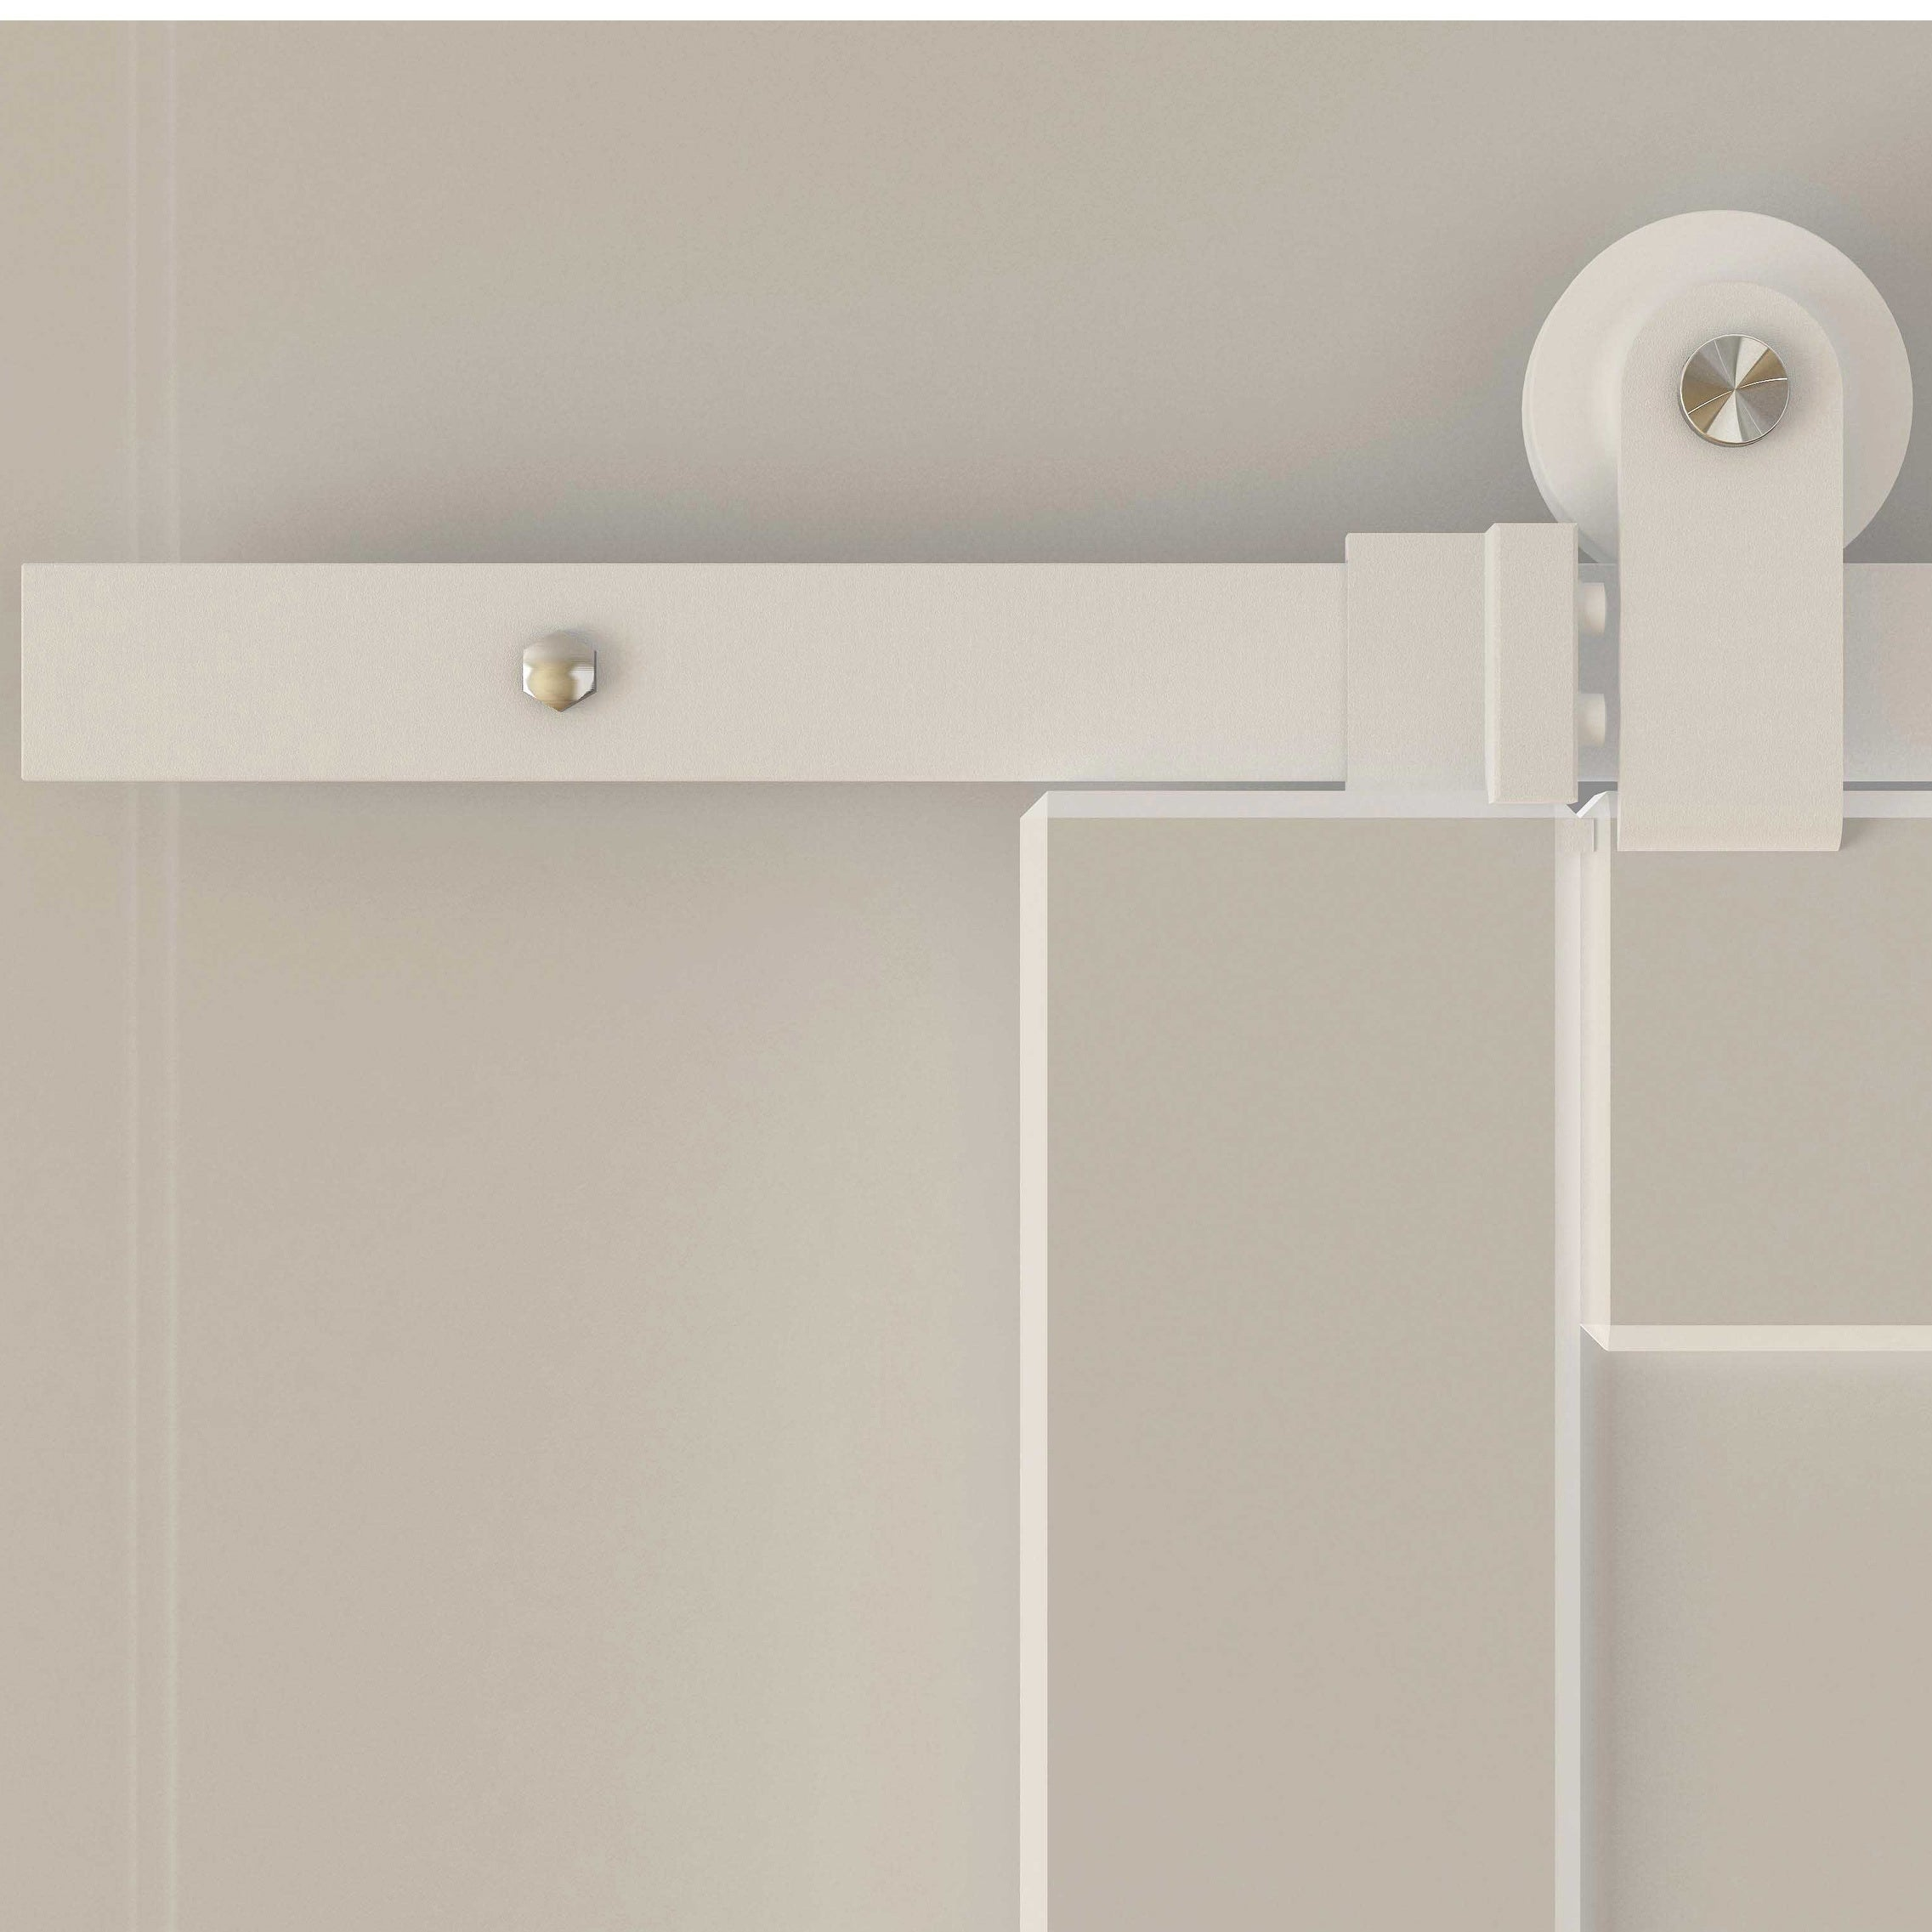 Homcom 6 Sliding Barn Door Hardware Kit White